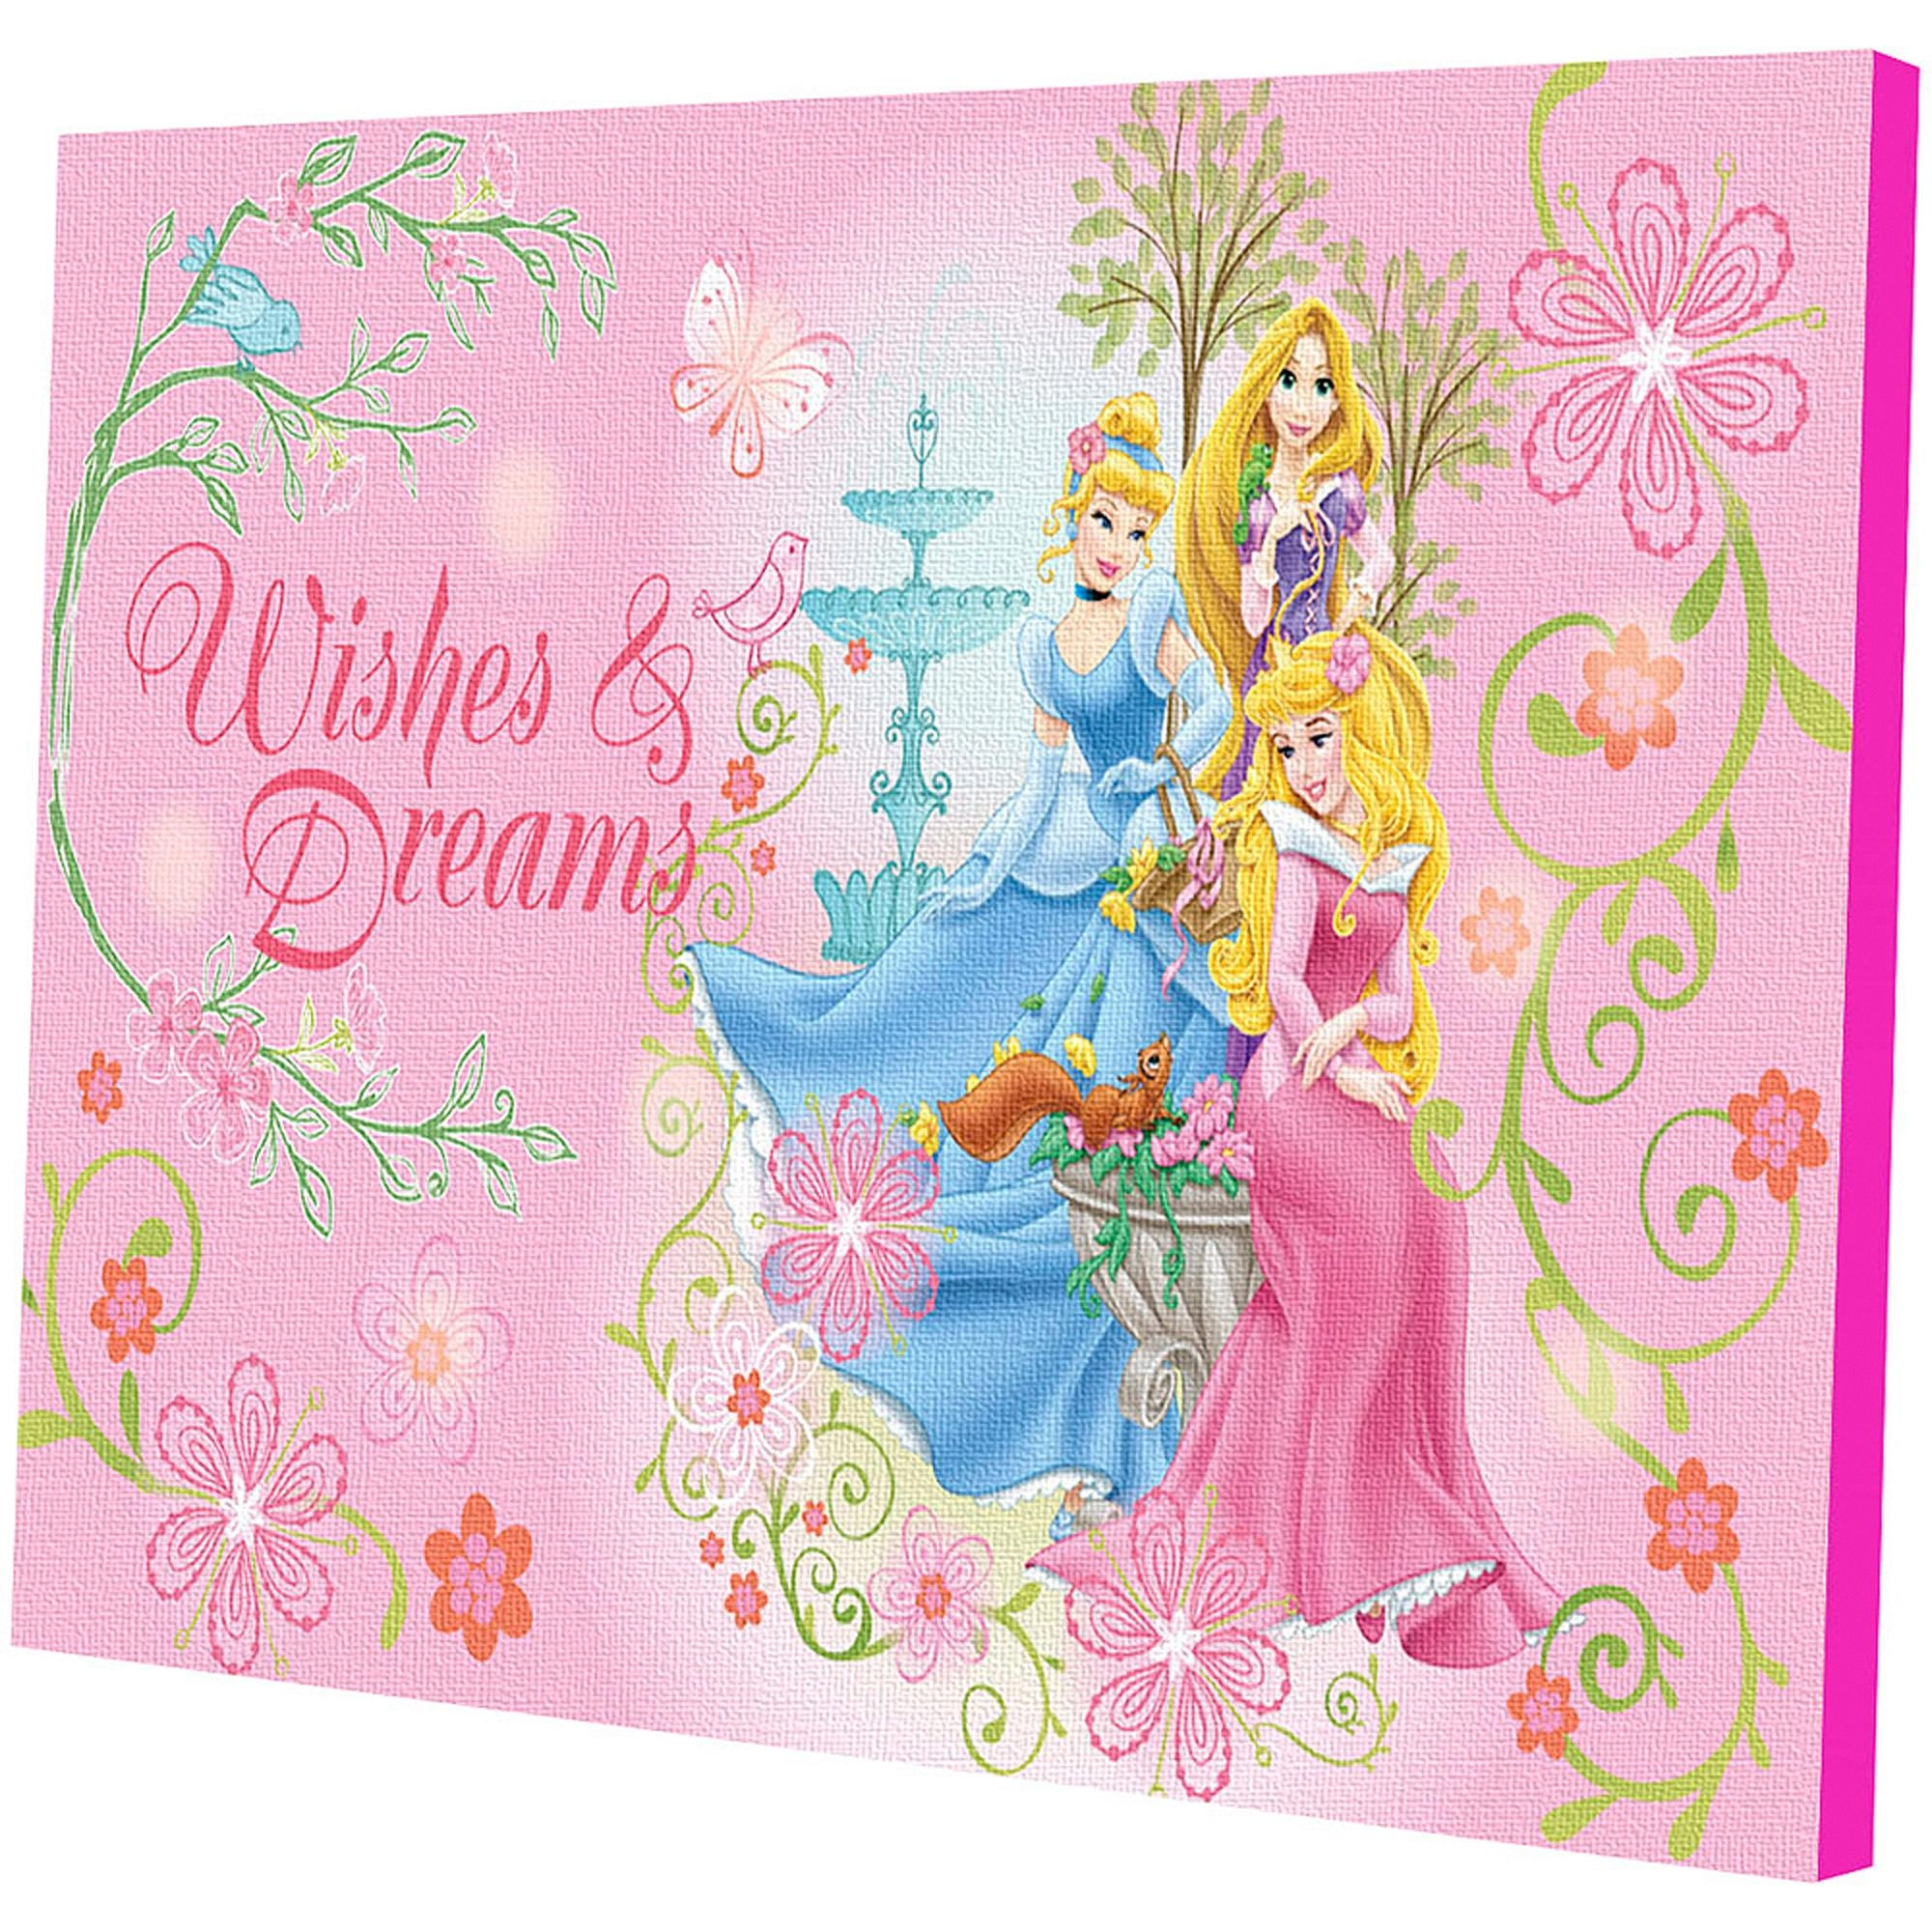 Disney Princess Led Light Up Canvas Wall Art – Walmart With Disney Princess Framed Wall Art (View 5 of 20)